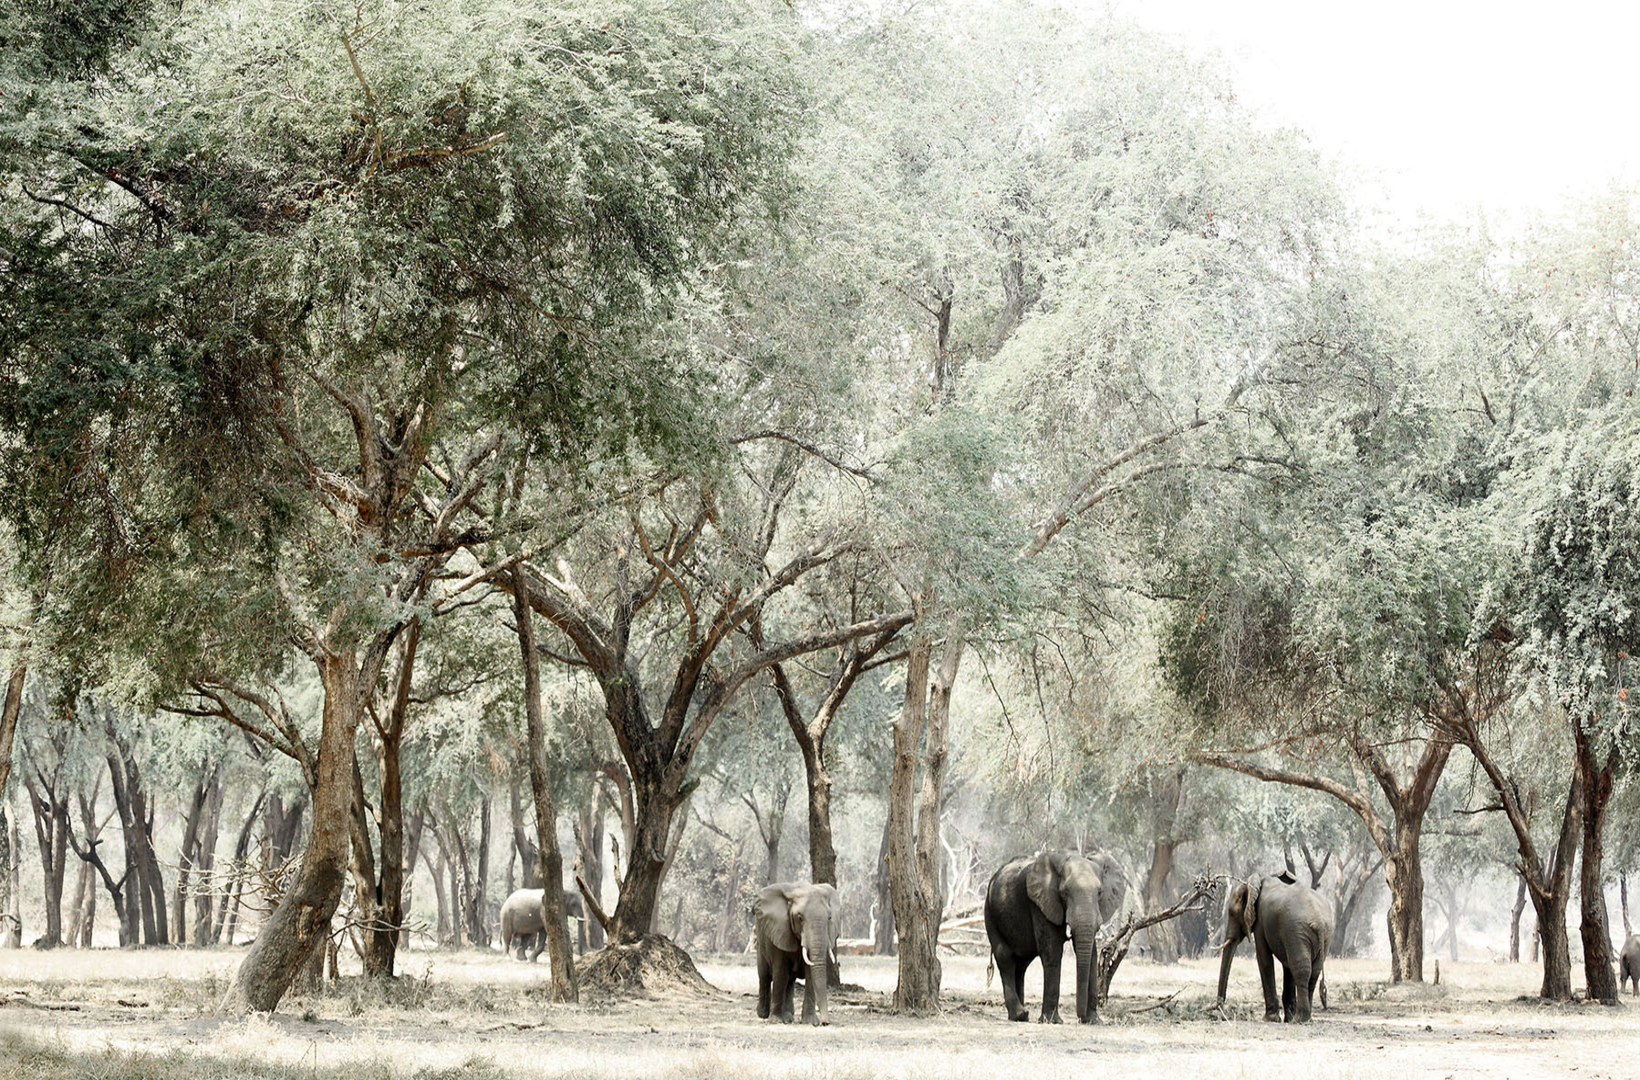 A small herd of African elephants graze the glades of Ana trees for fallen seed pods at Mana Pools National Park in Zimbabwe